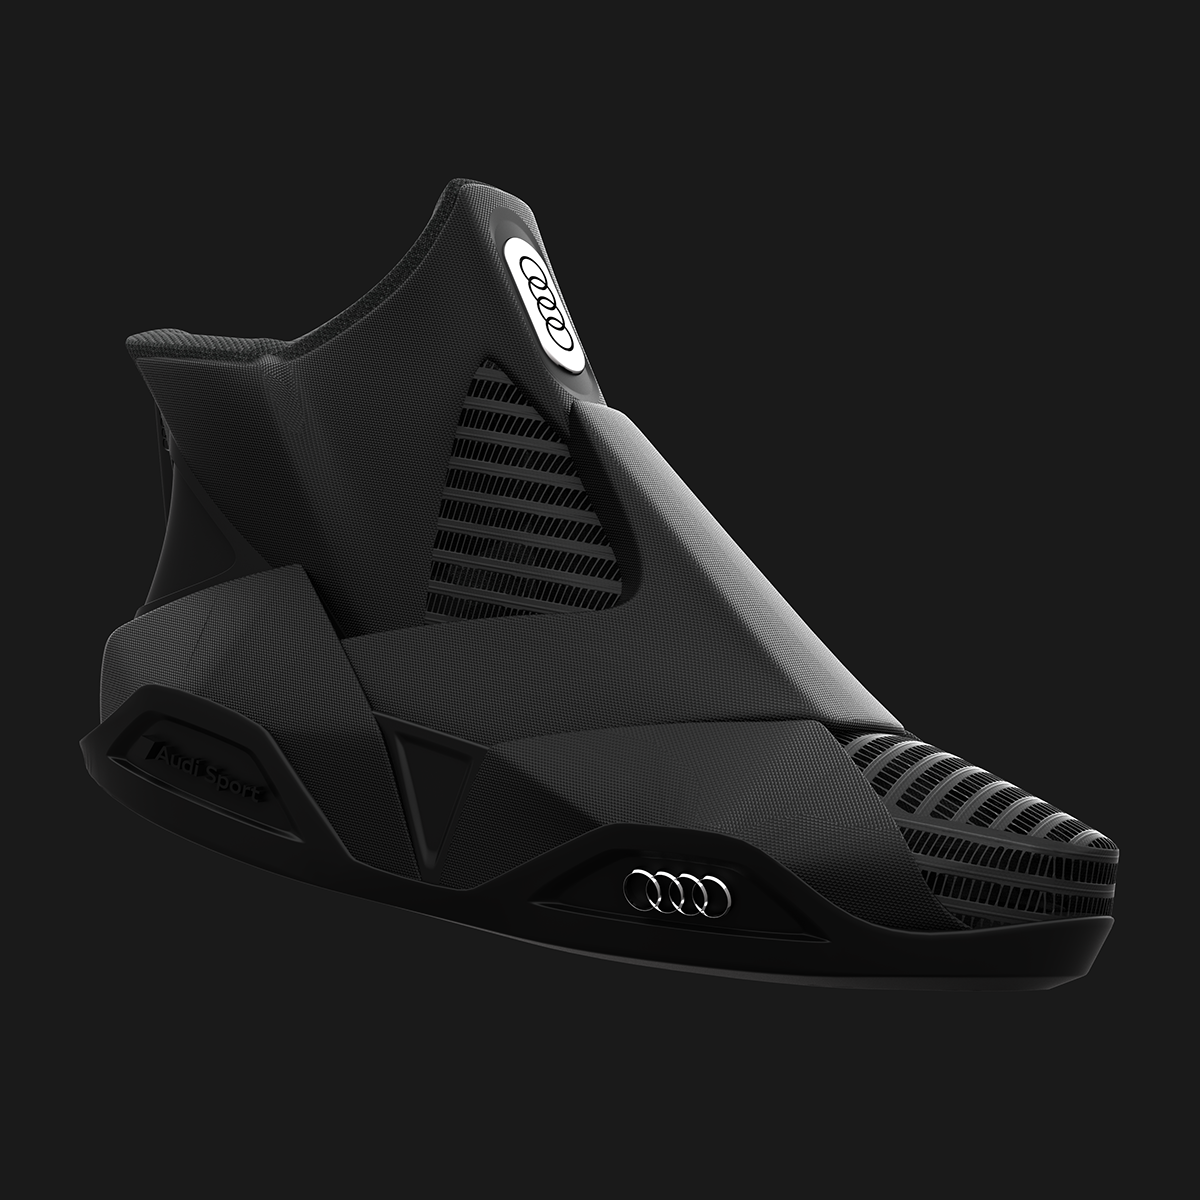 c49cfbc07635 Audi Future Shoes Dark Edition on Behance